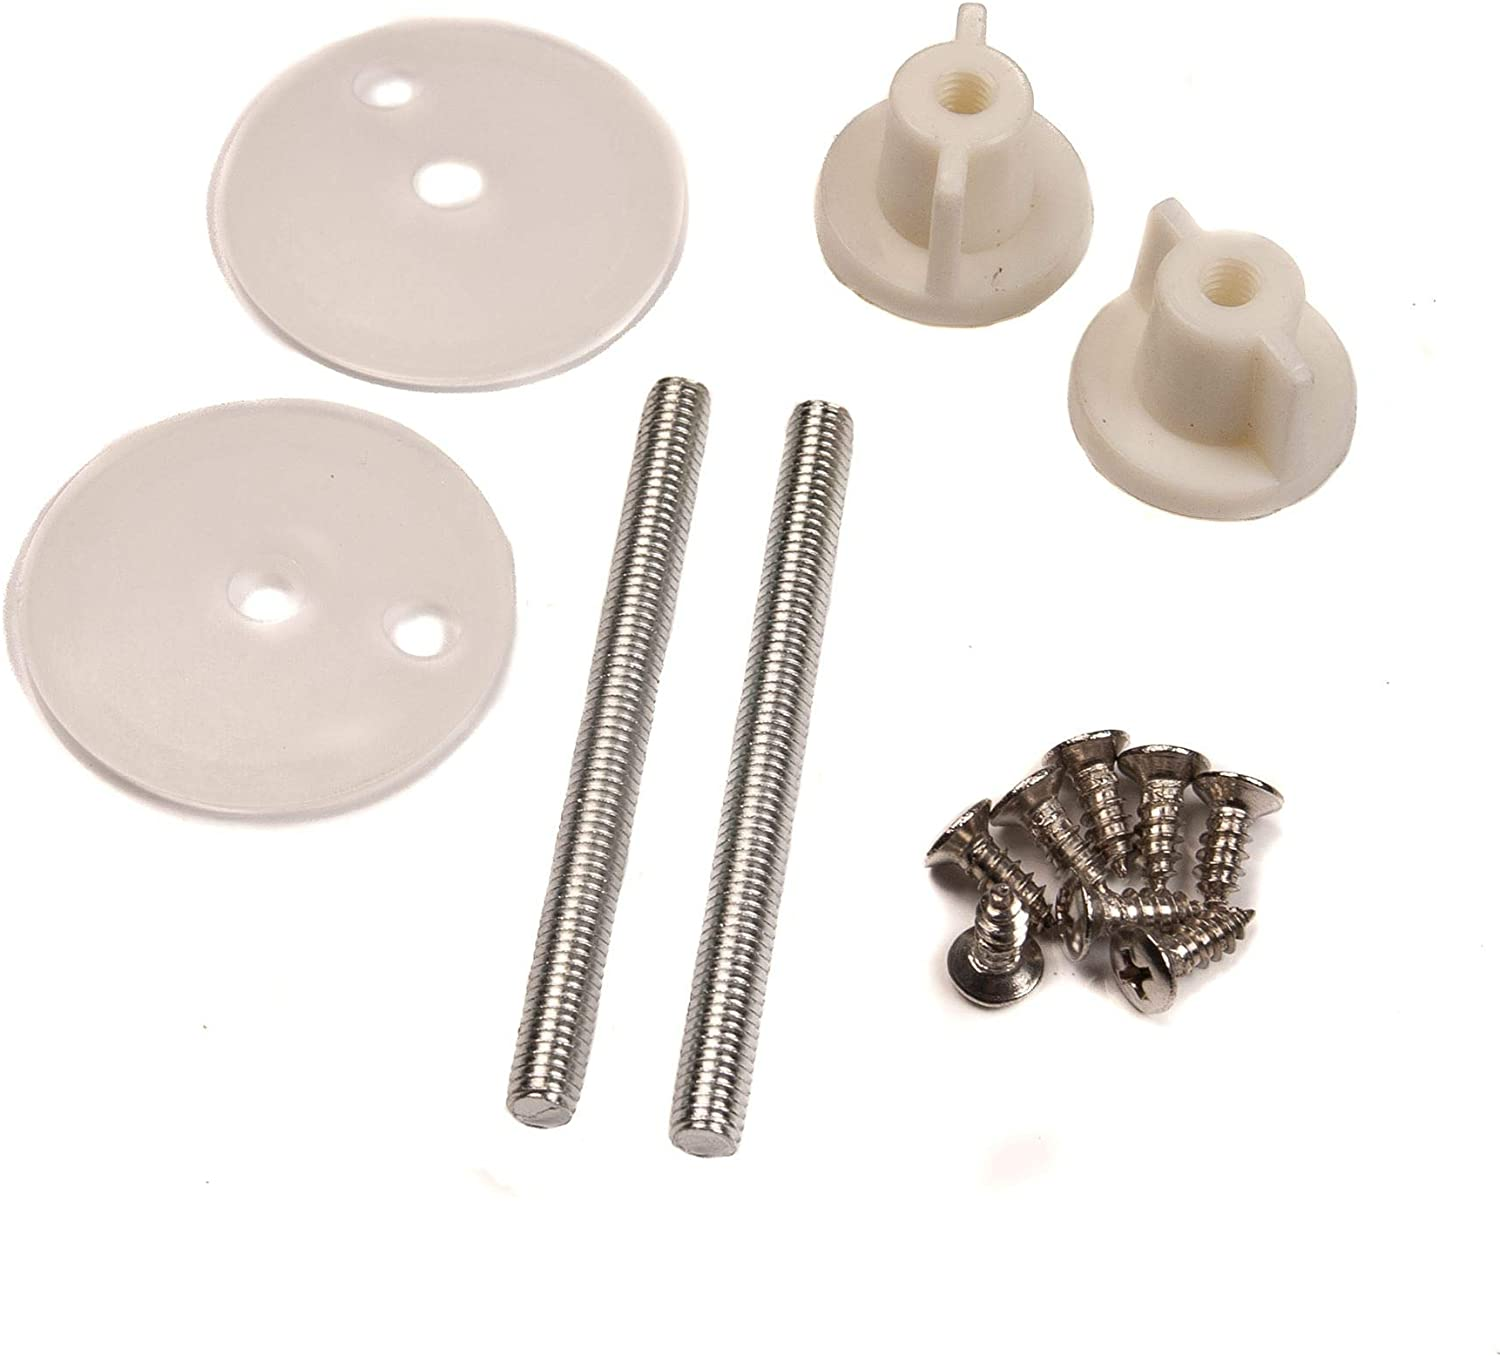 Toilet Seat Hinge Bolts Replacement Bolt Screws Washers Fixing Fitting Kit WC